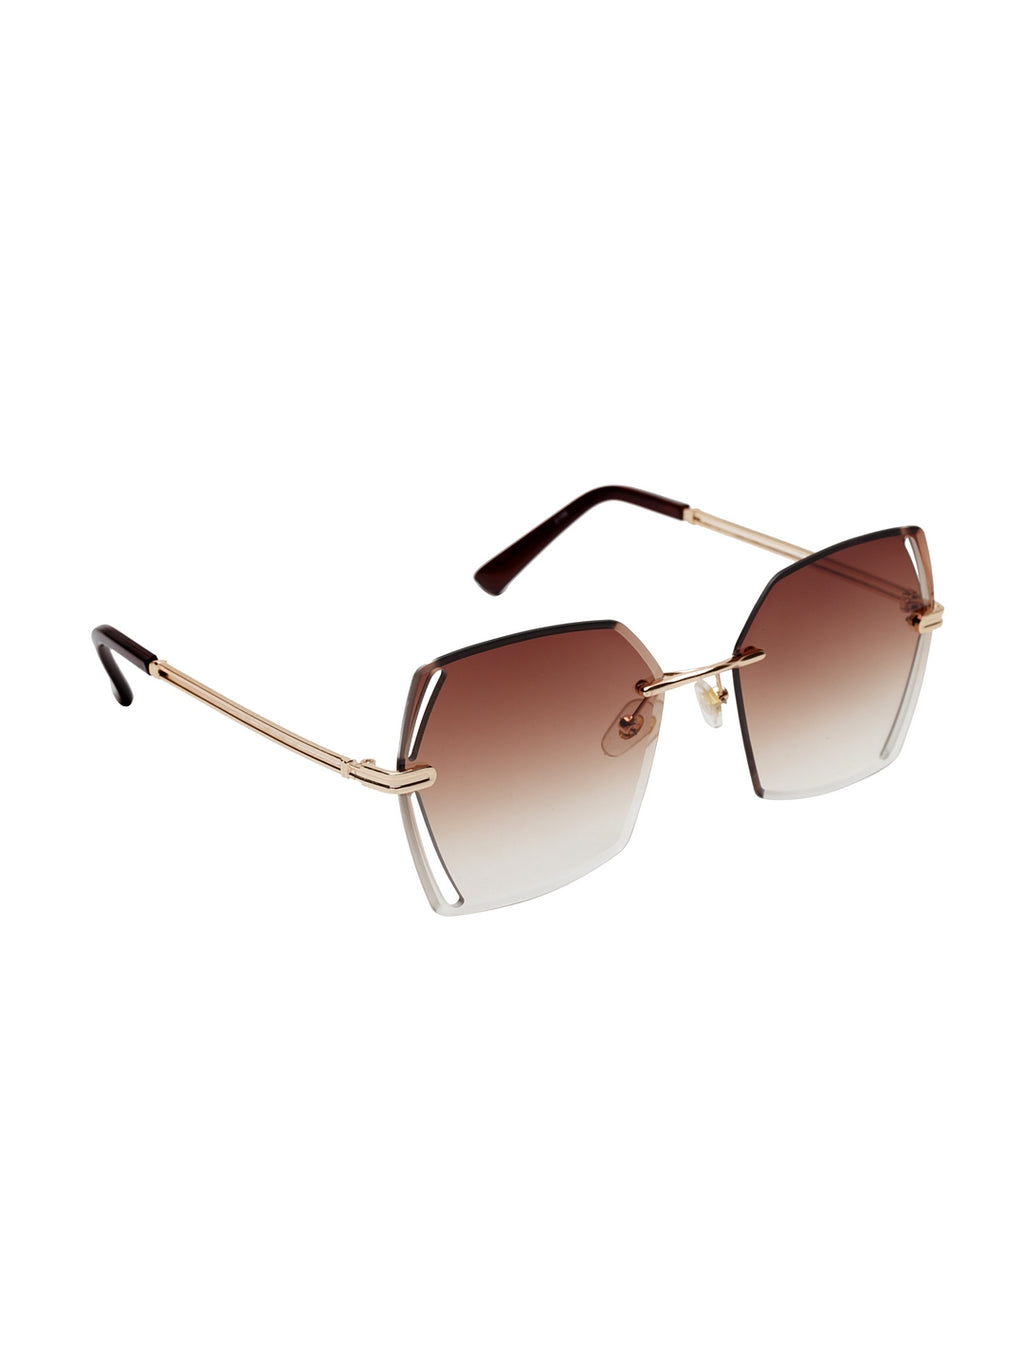 Avant-Garde Paris Ocean Lens Square Rimless Sunglasses